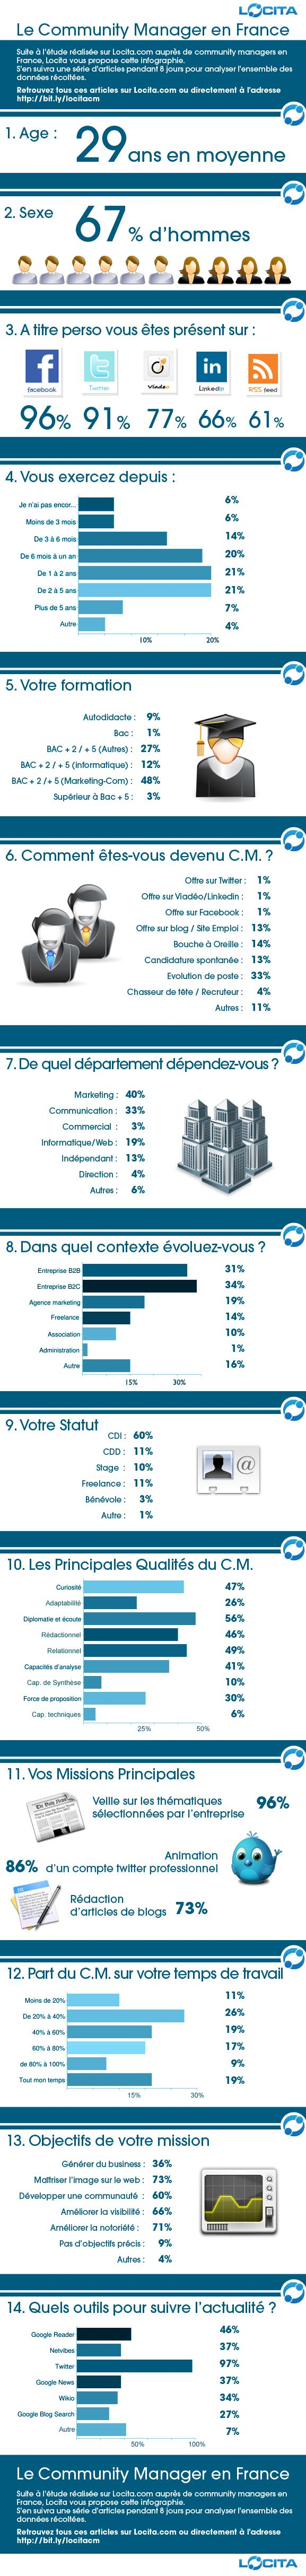 Le community manager, en France, en 1 infographie